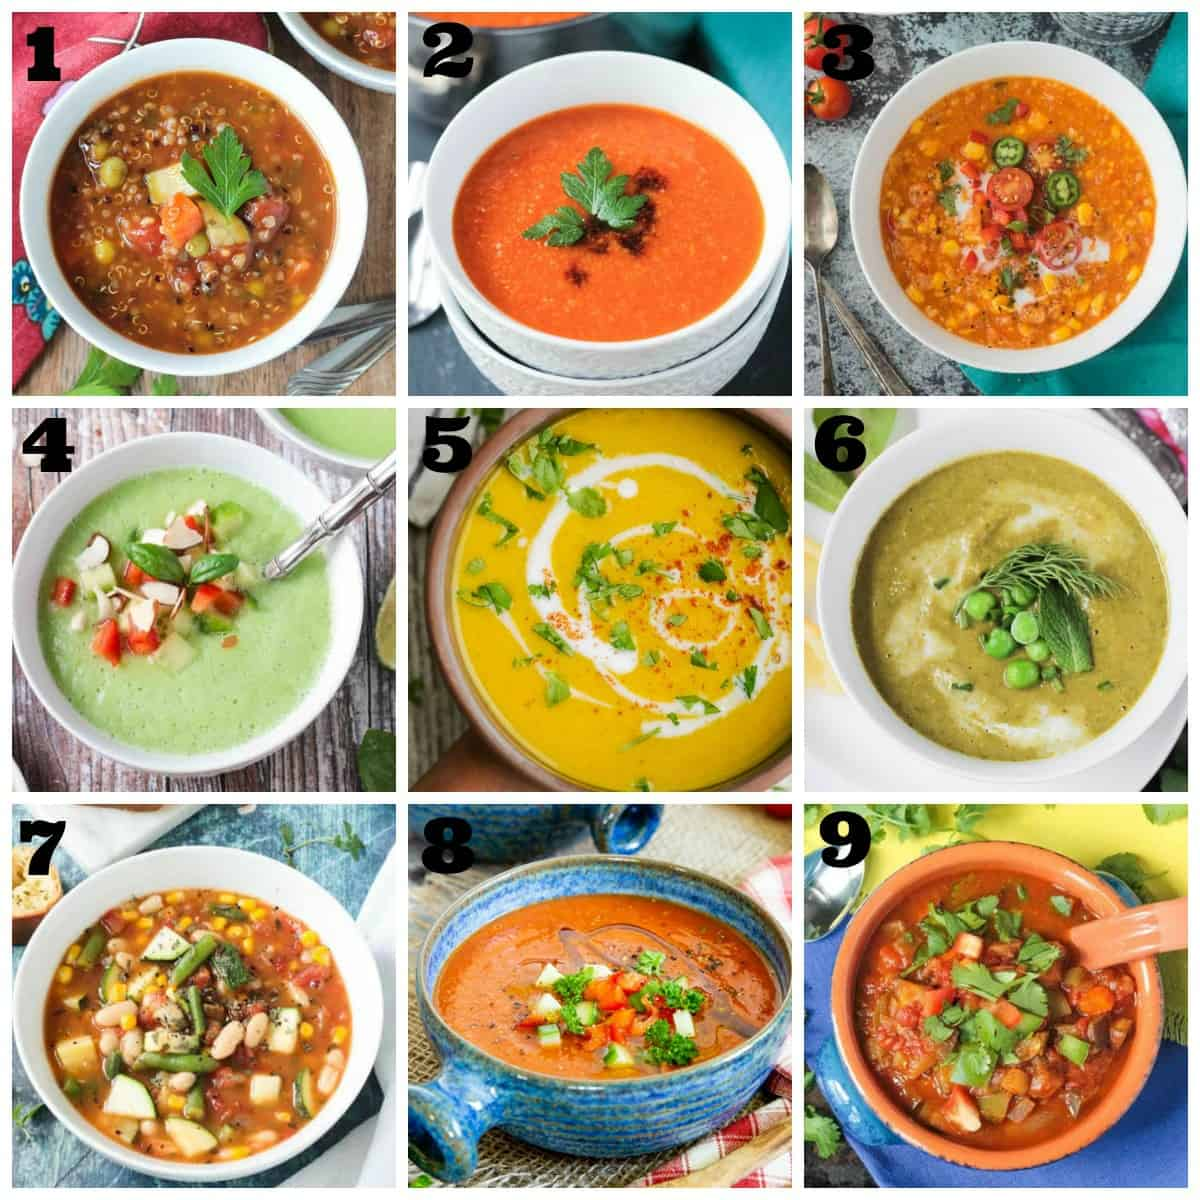 9-photo collage of summer soup recipes.